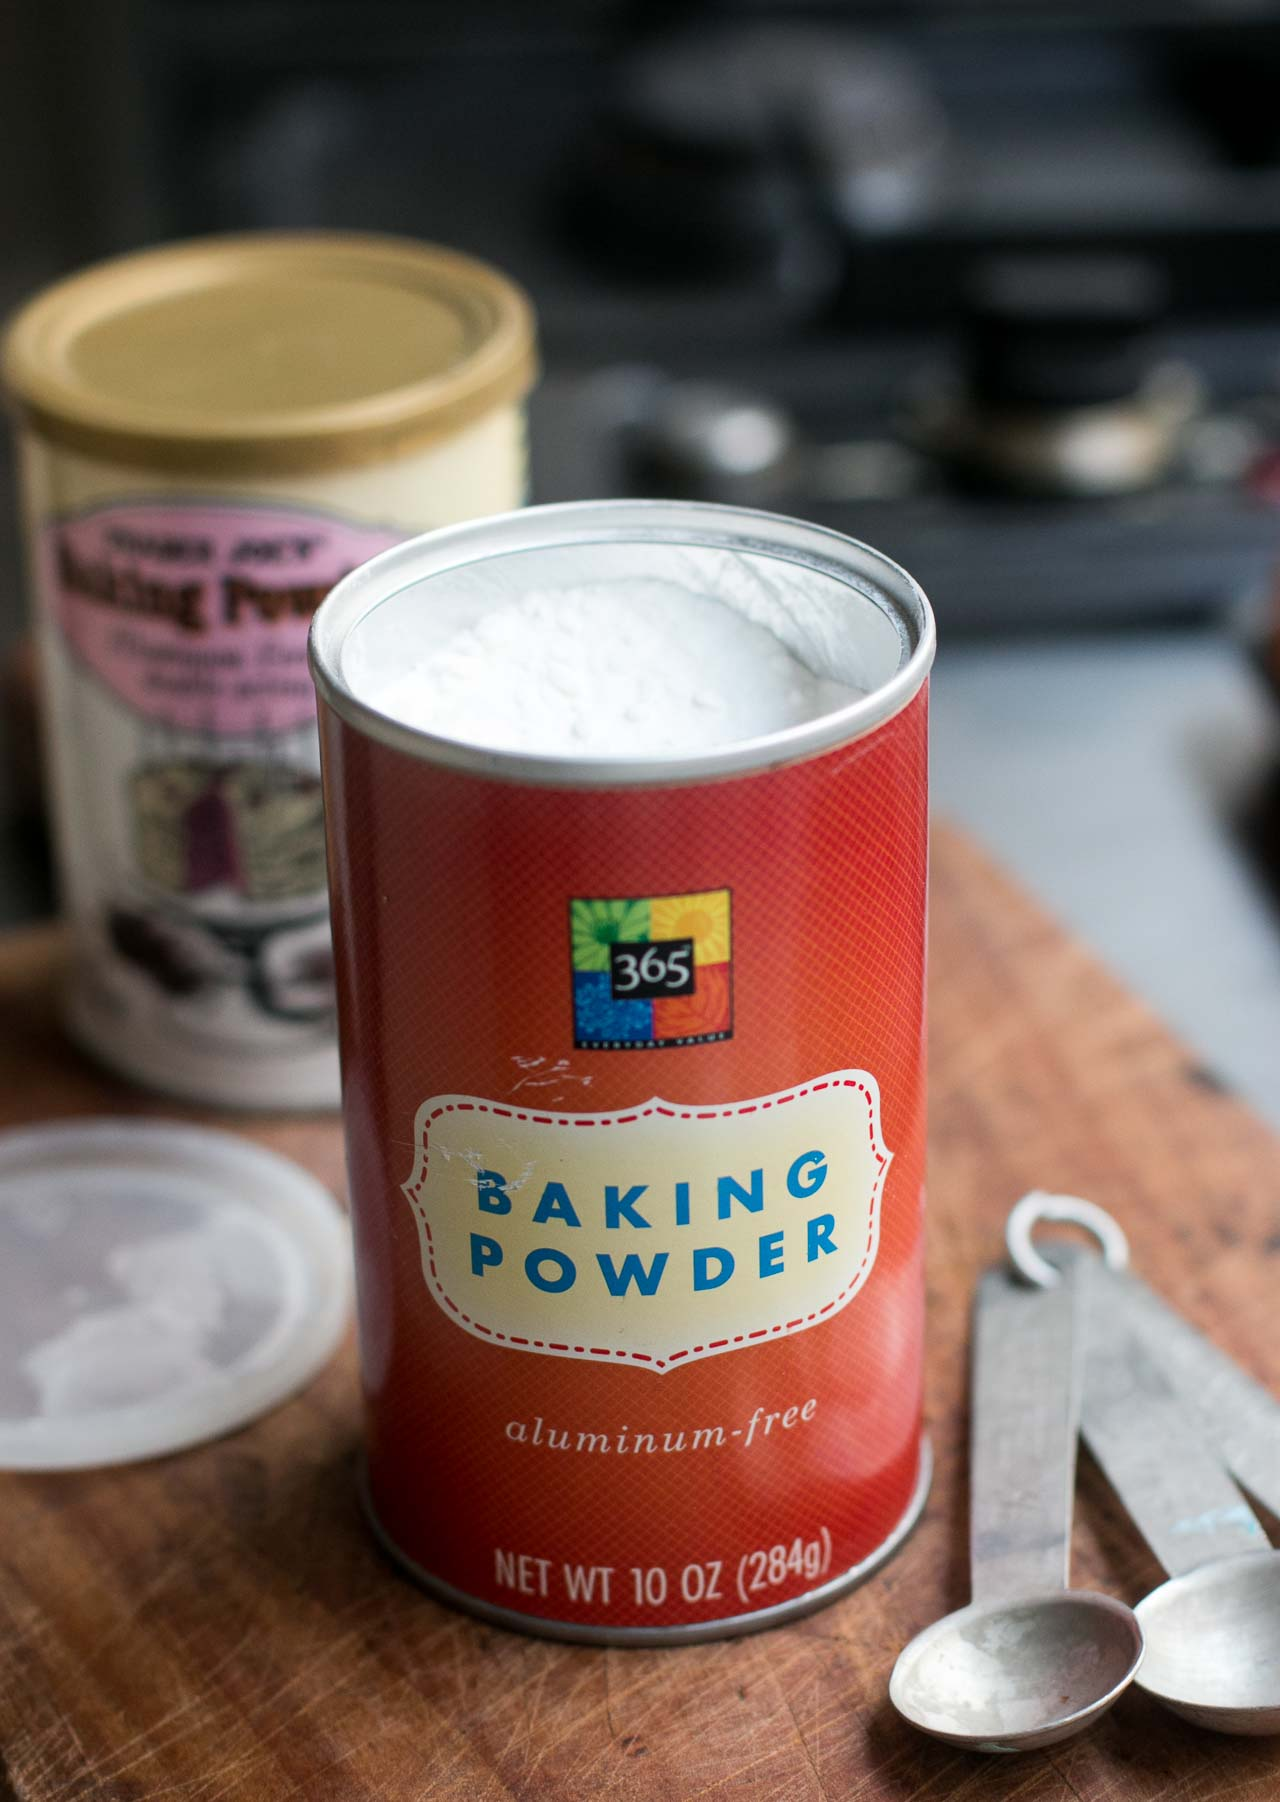 After its expiration date baking powder may not work as leavening in your recipe. It can however, be used in place of baking soda in many cases. This is a guide about uses for expired baking powder.